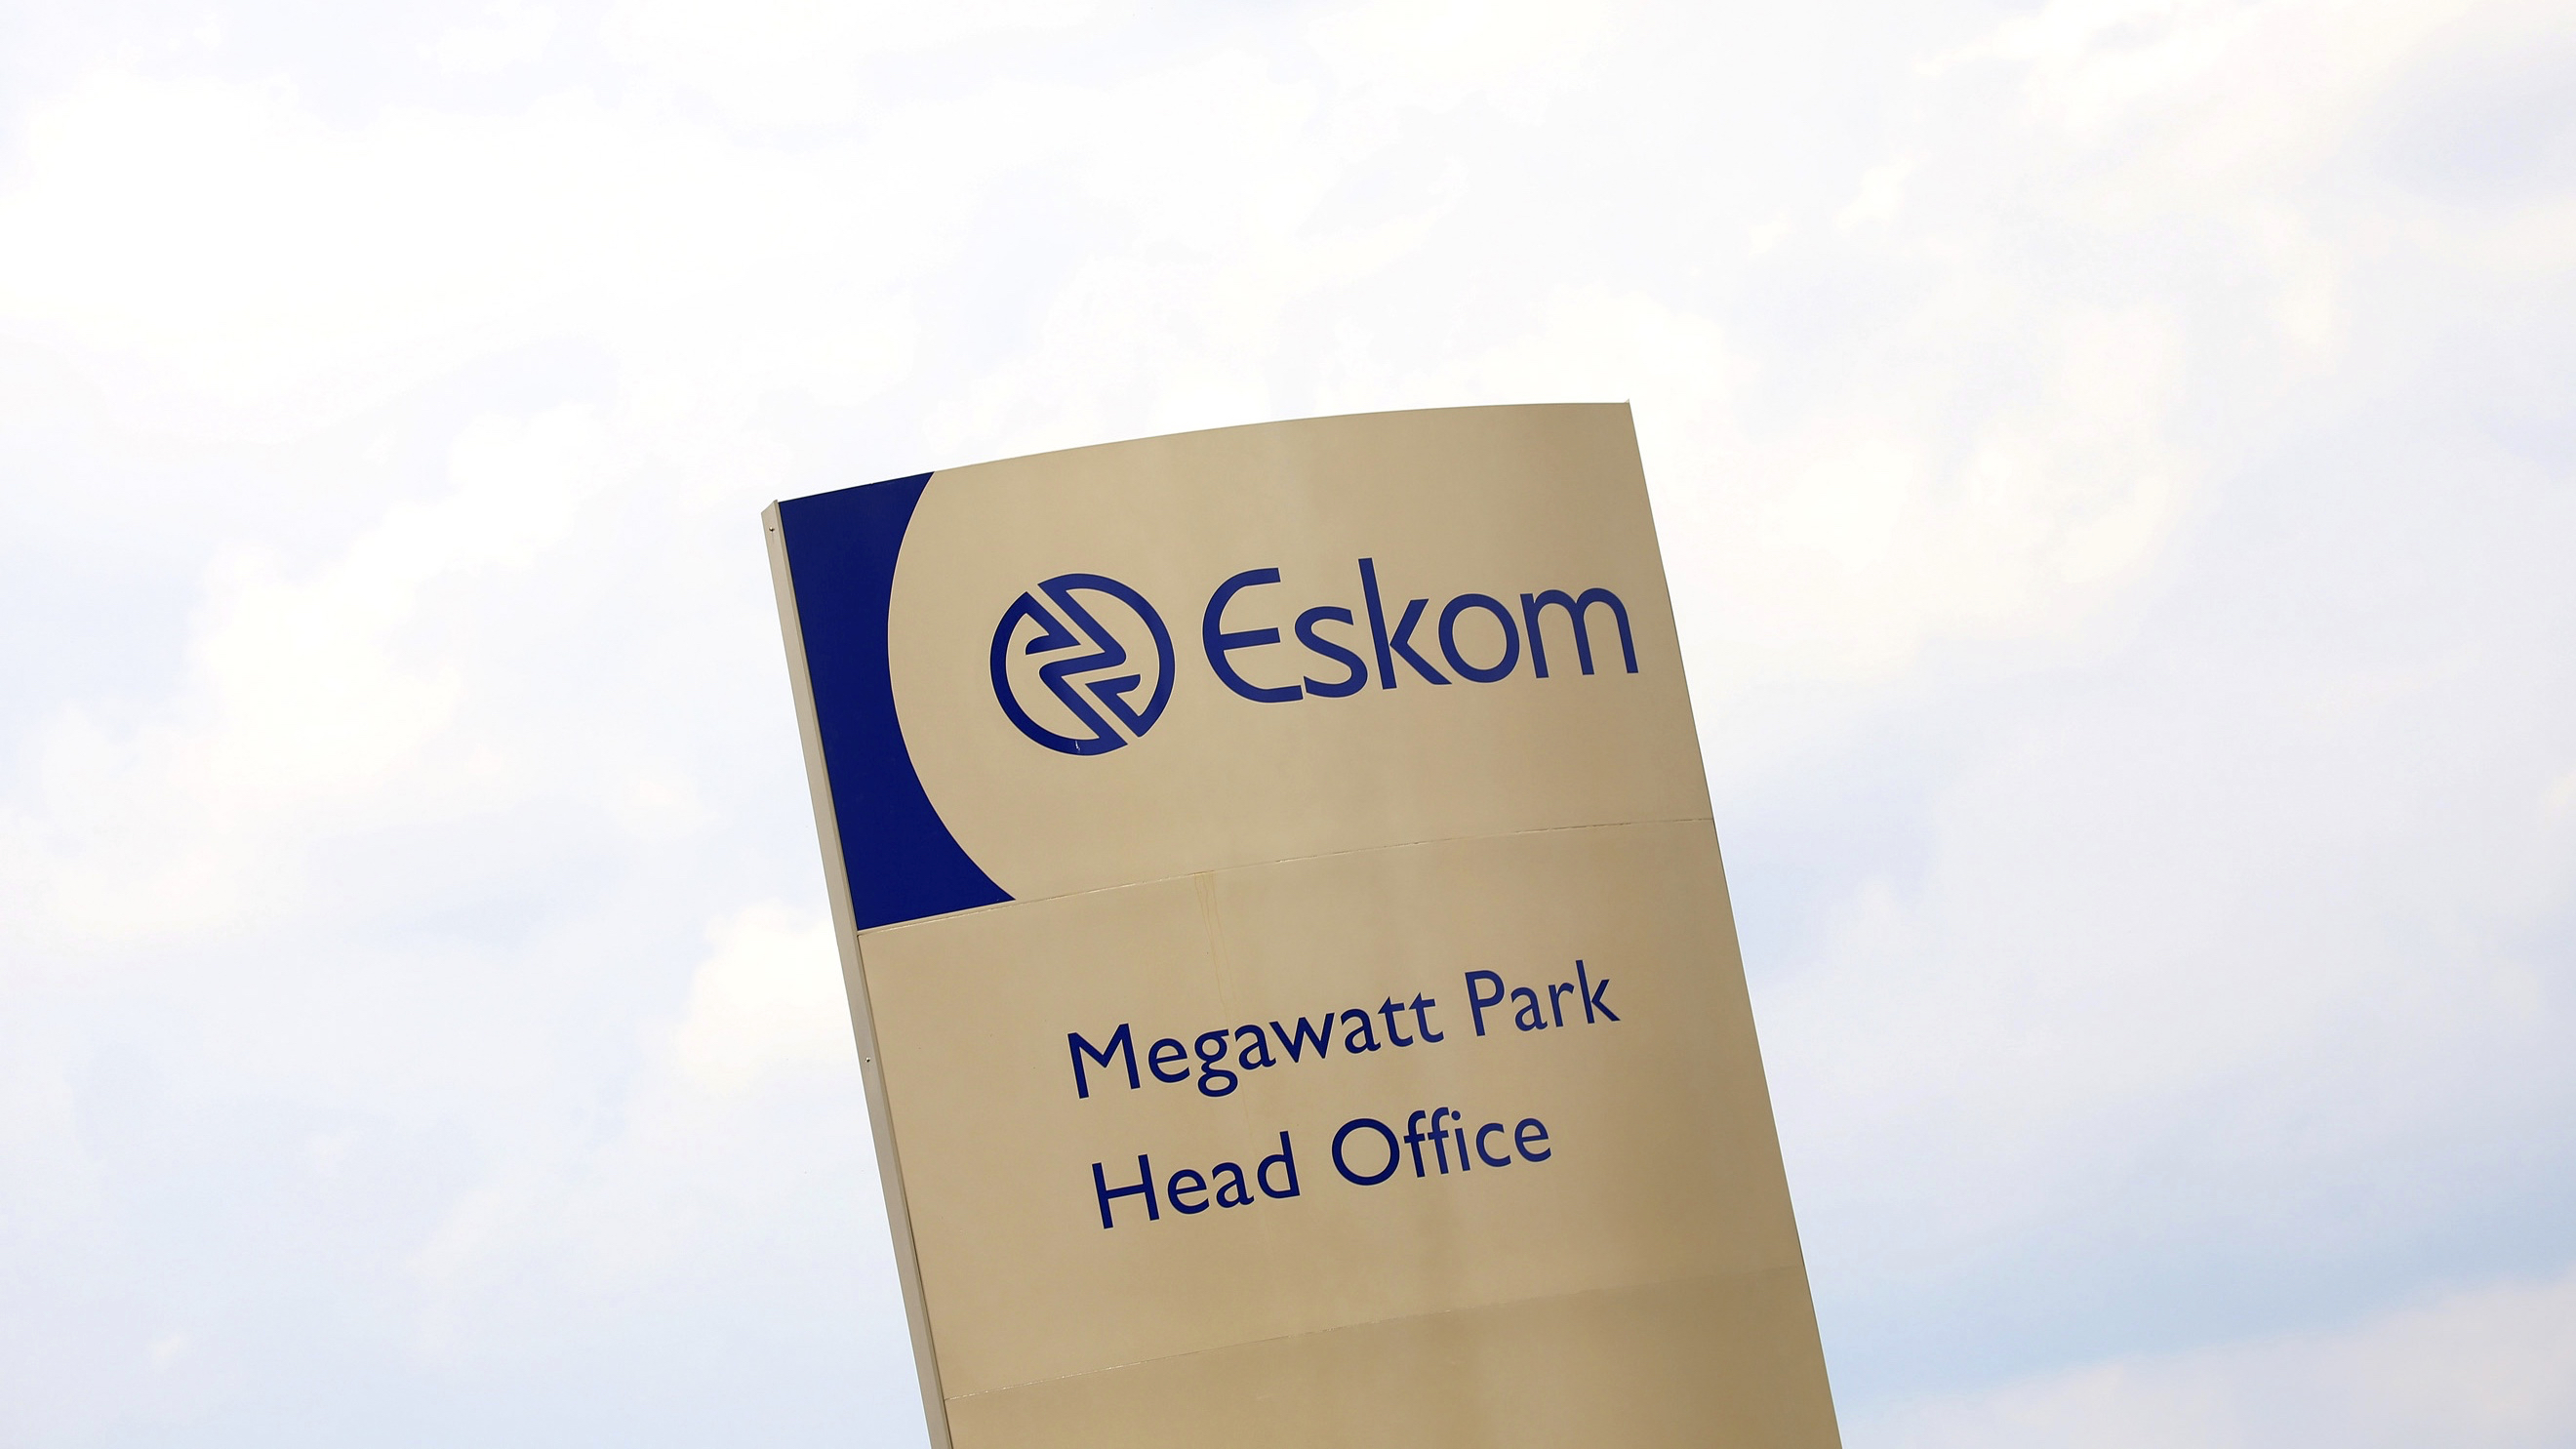 Eskom CEO Brian Molefe resigns following corruption implications in the state capture report